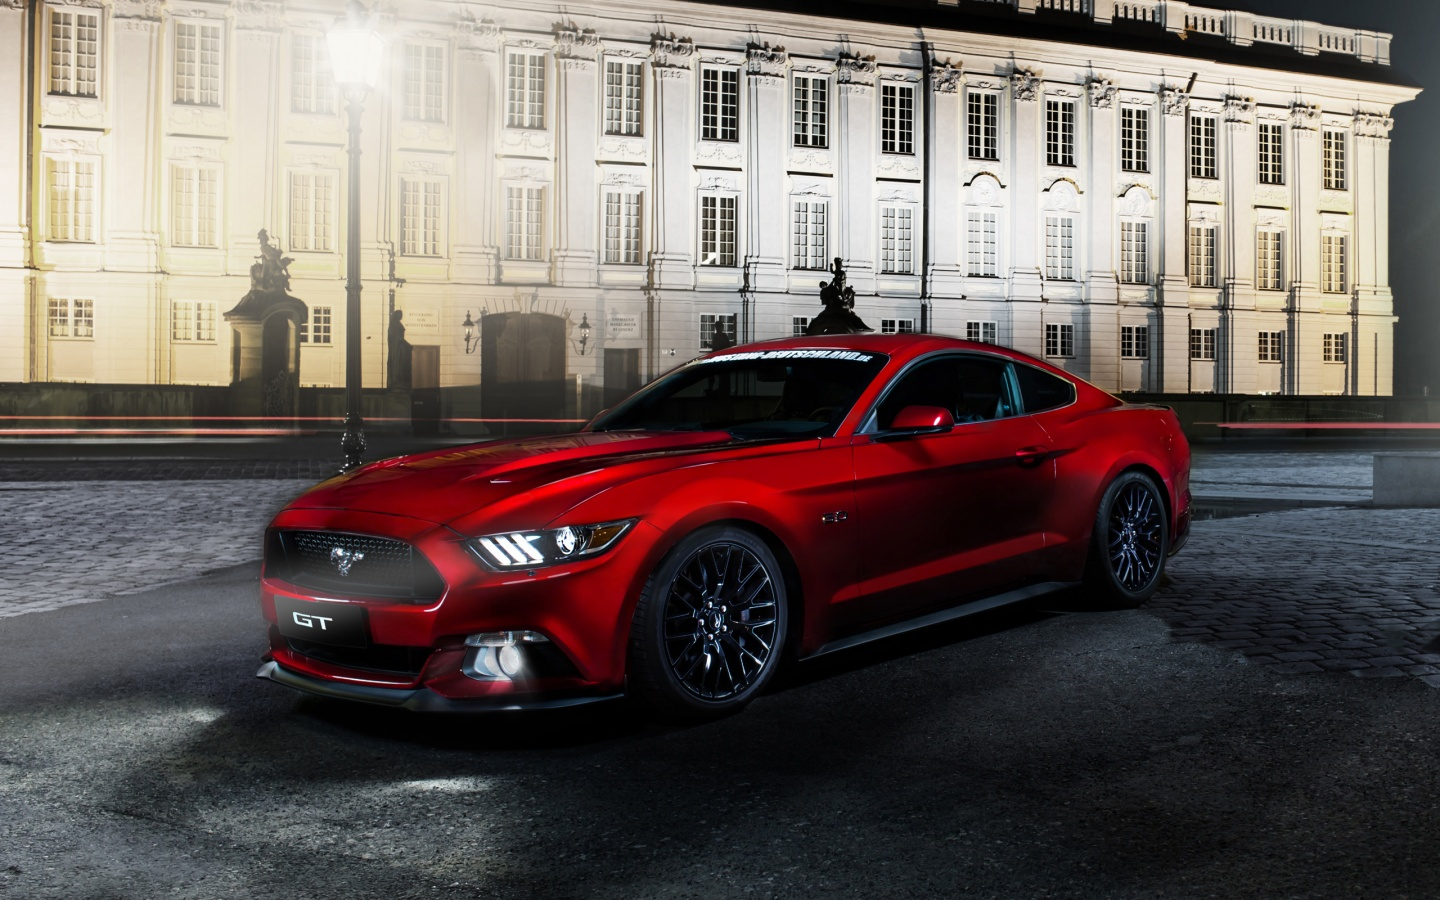 Ford Mustang GT 2015 Wallpaper HD Car Wallpapers 1440x900